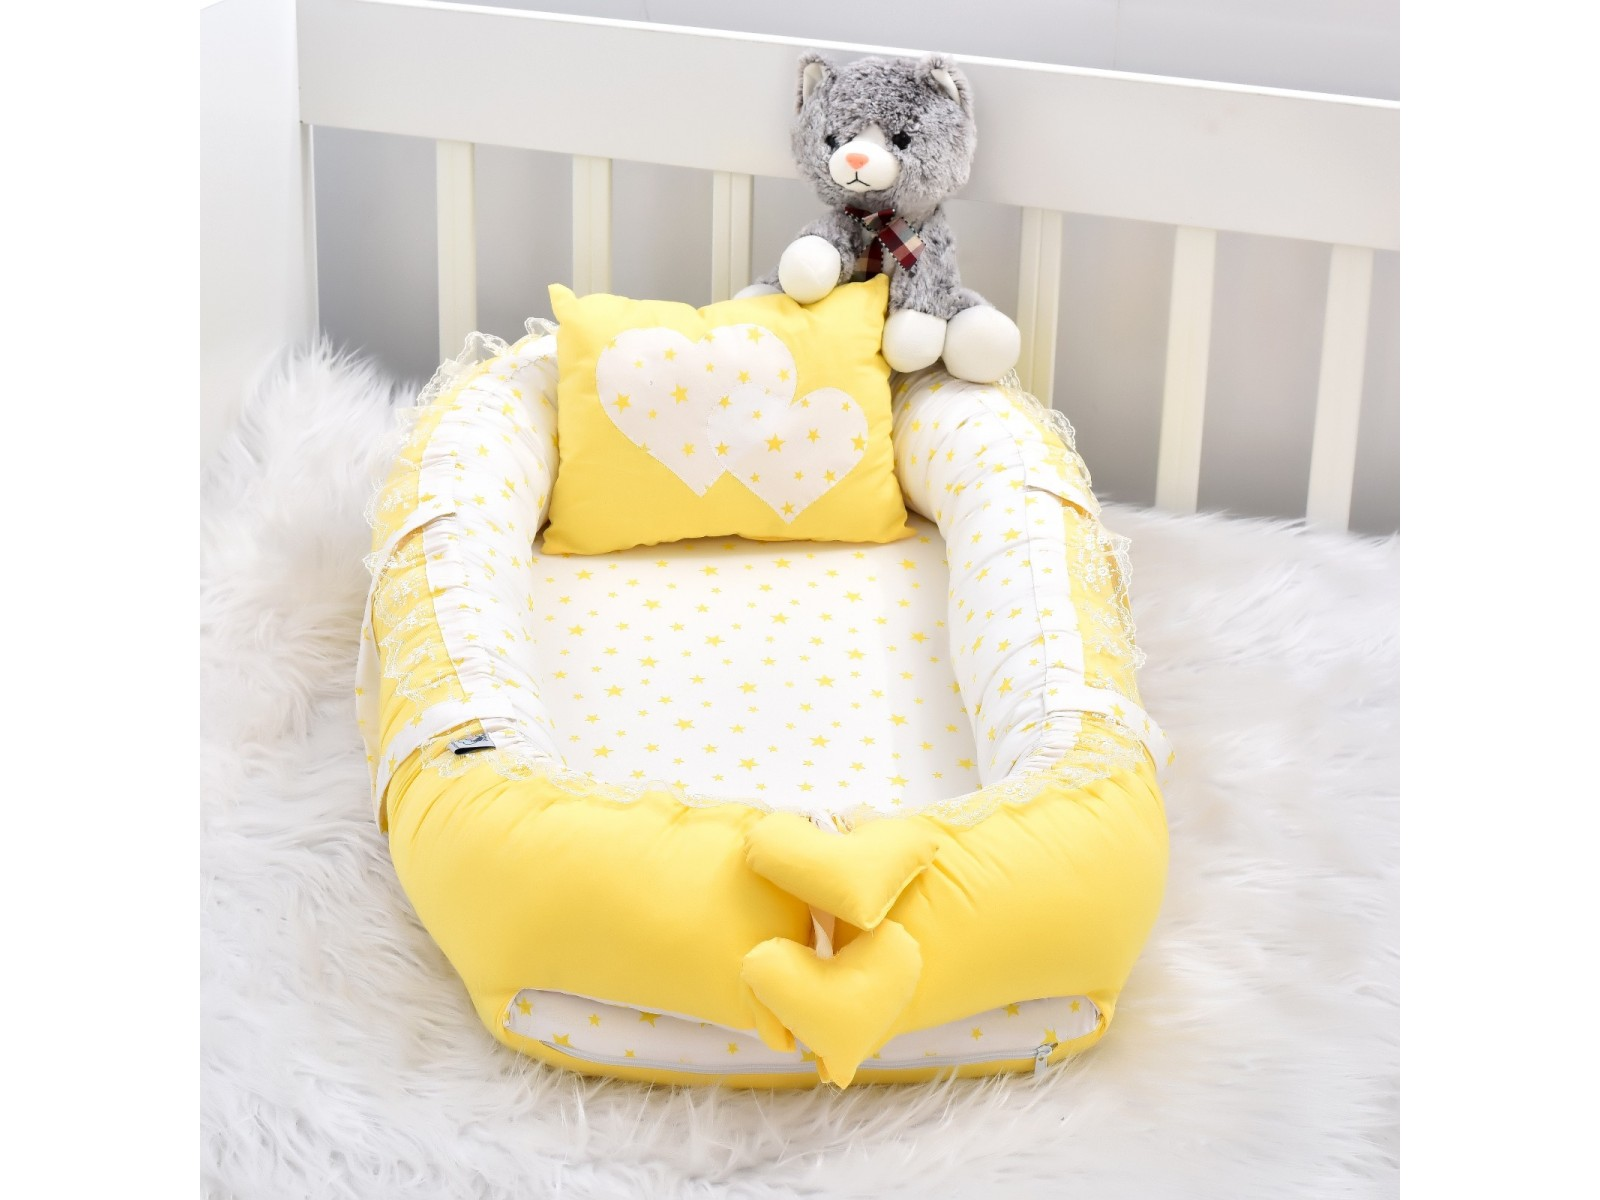 Babynest Solid Yellow Star Combine Heart Design